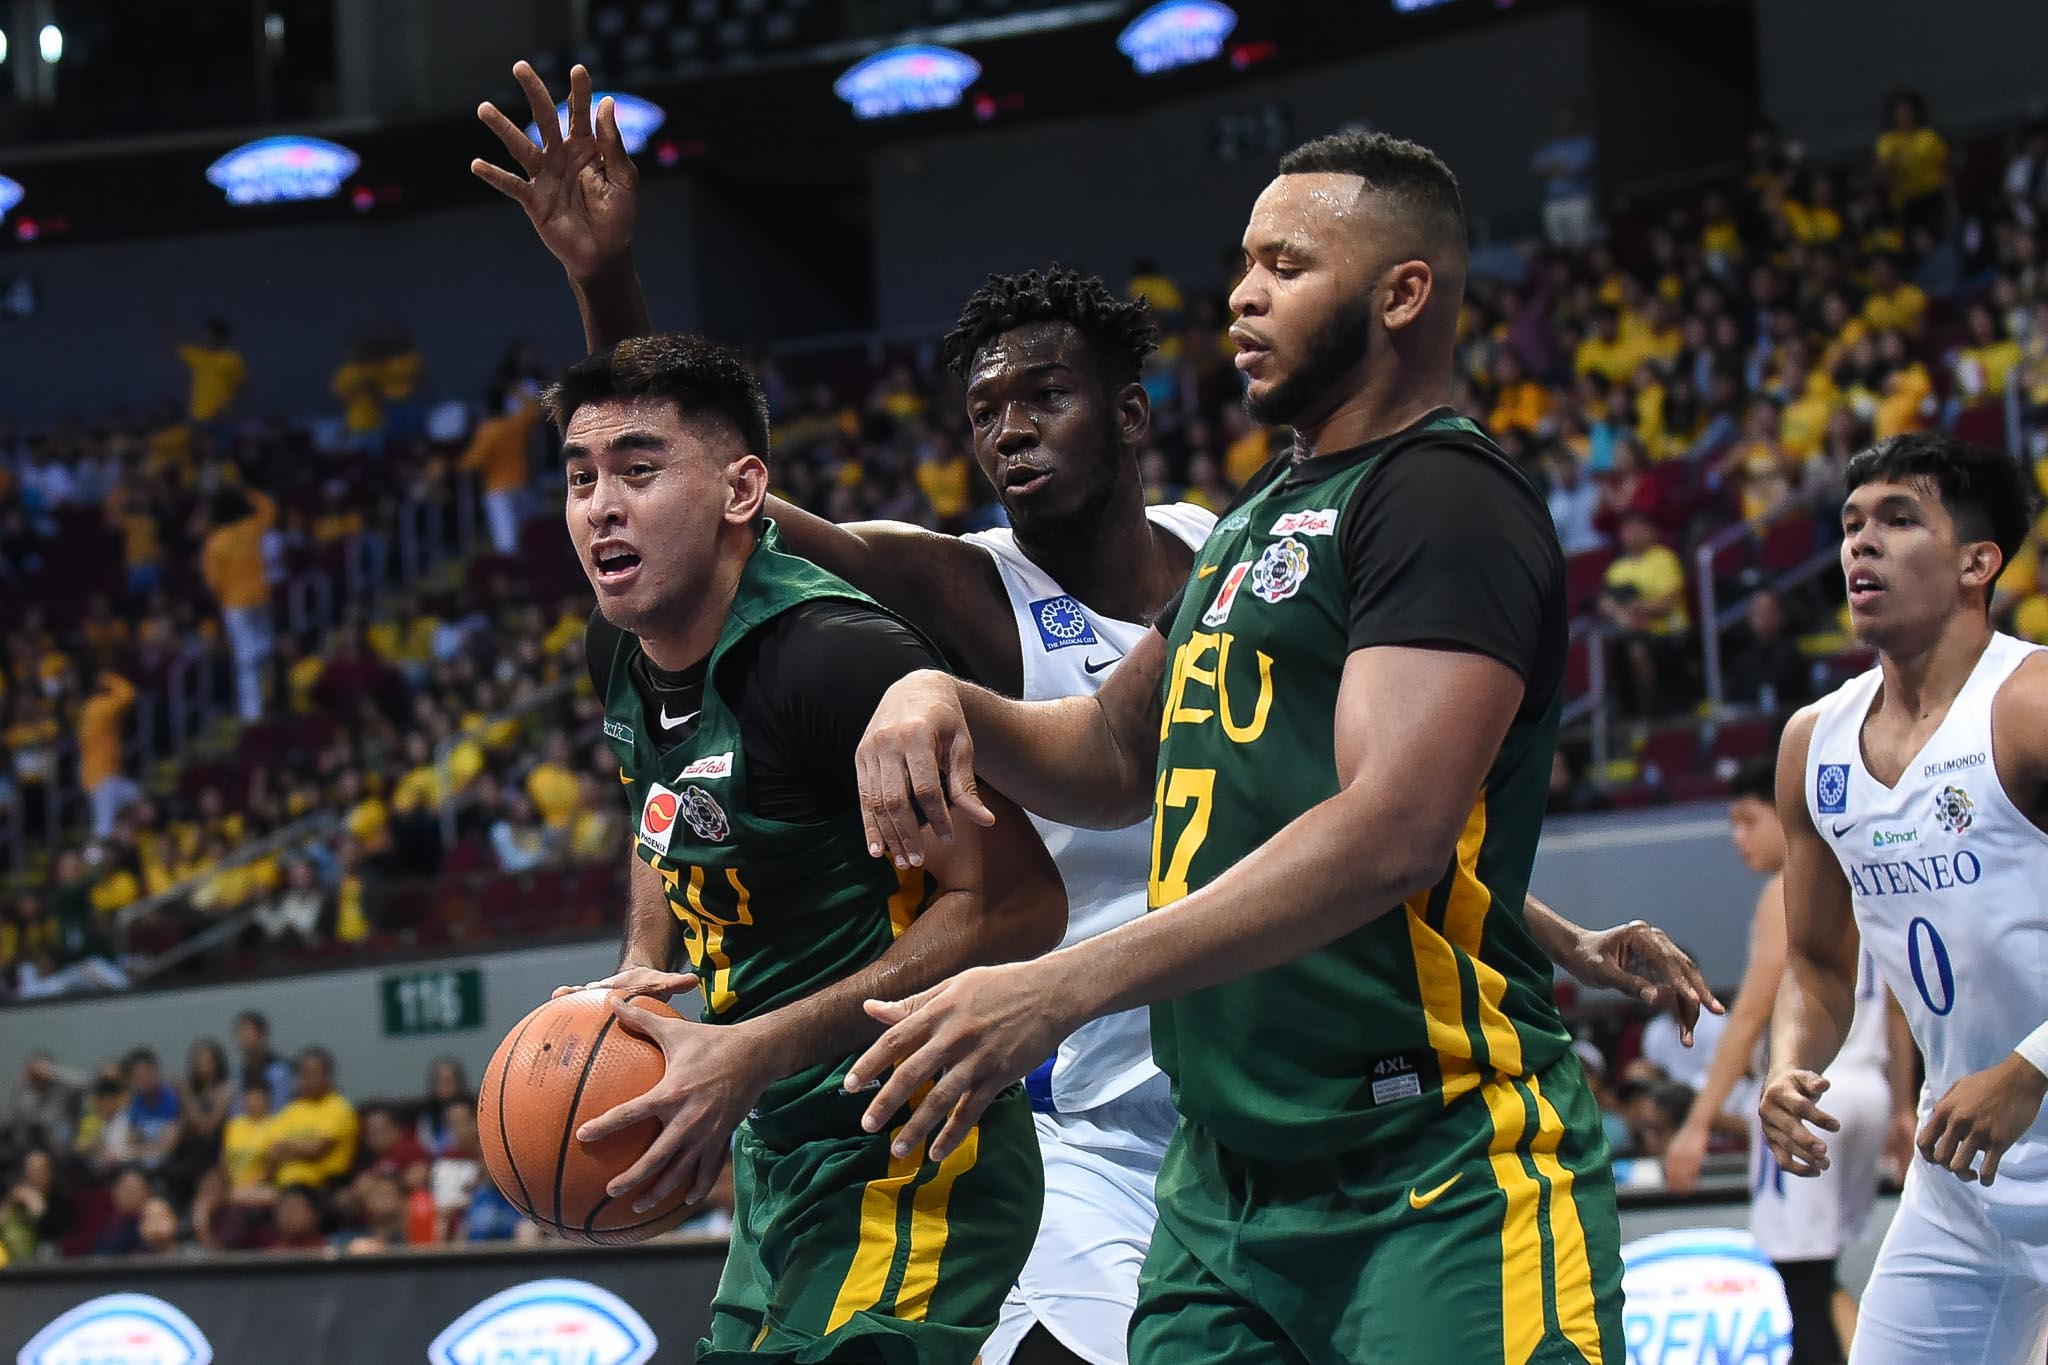 reputable site b5deb 06fa6 FEU stuns Ateneo in UAAP thriller